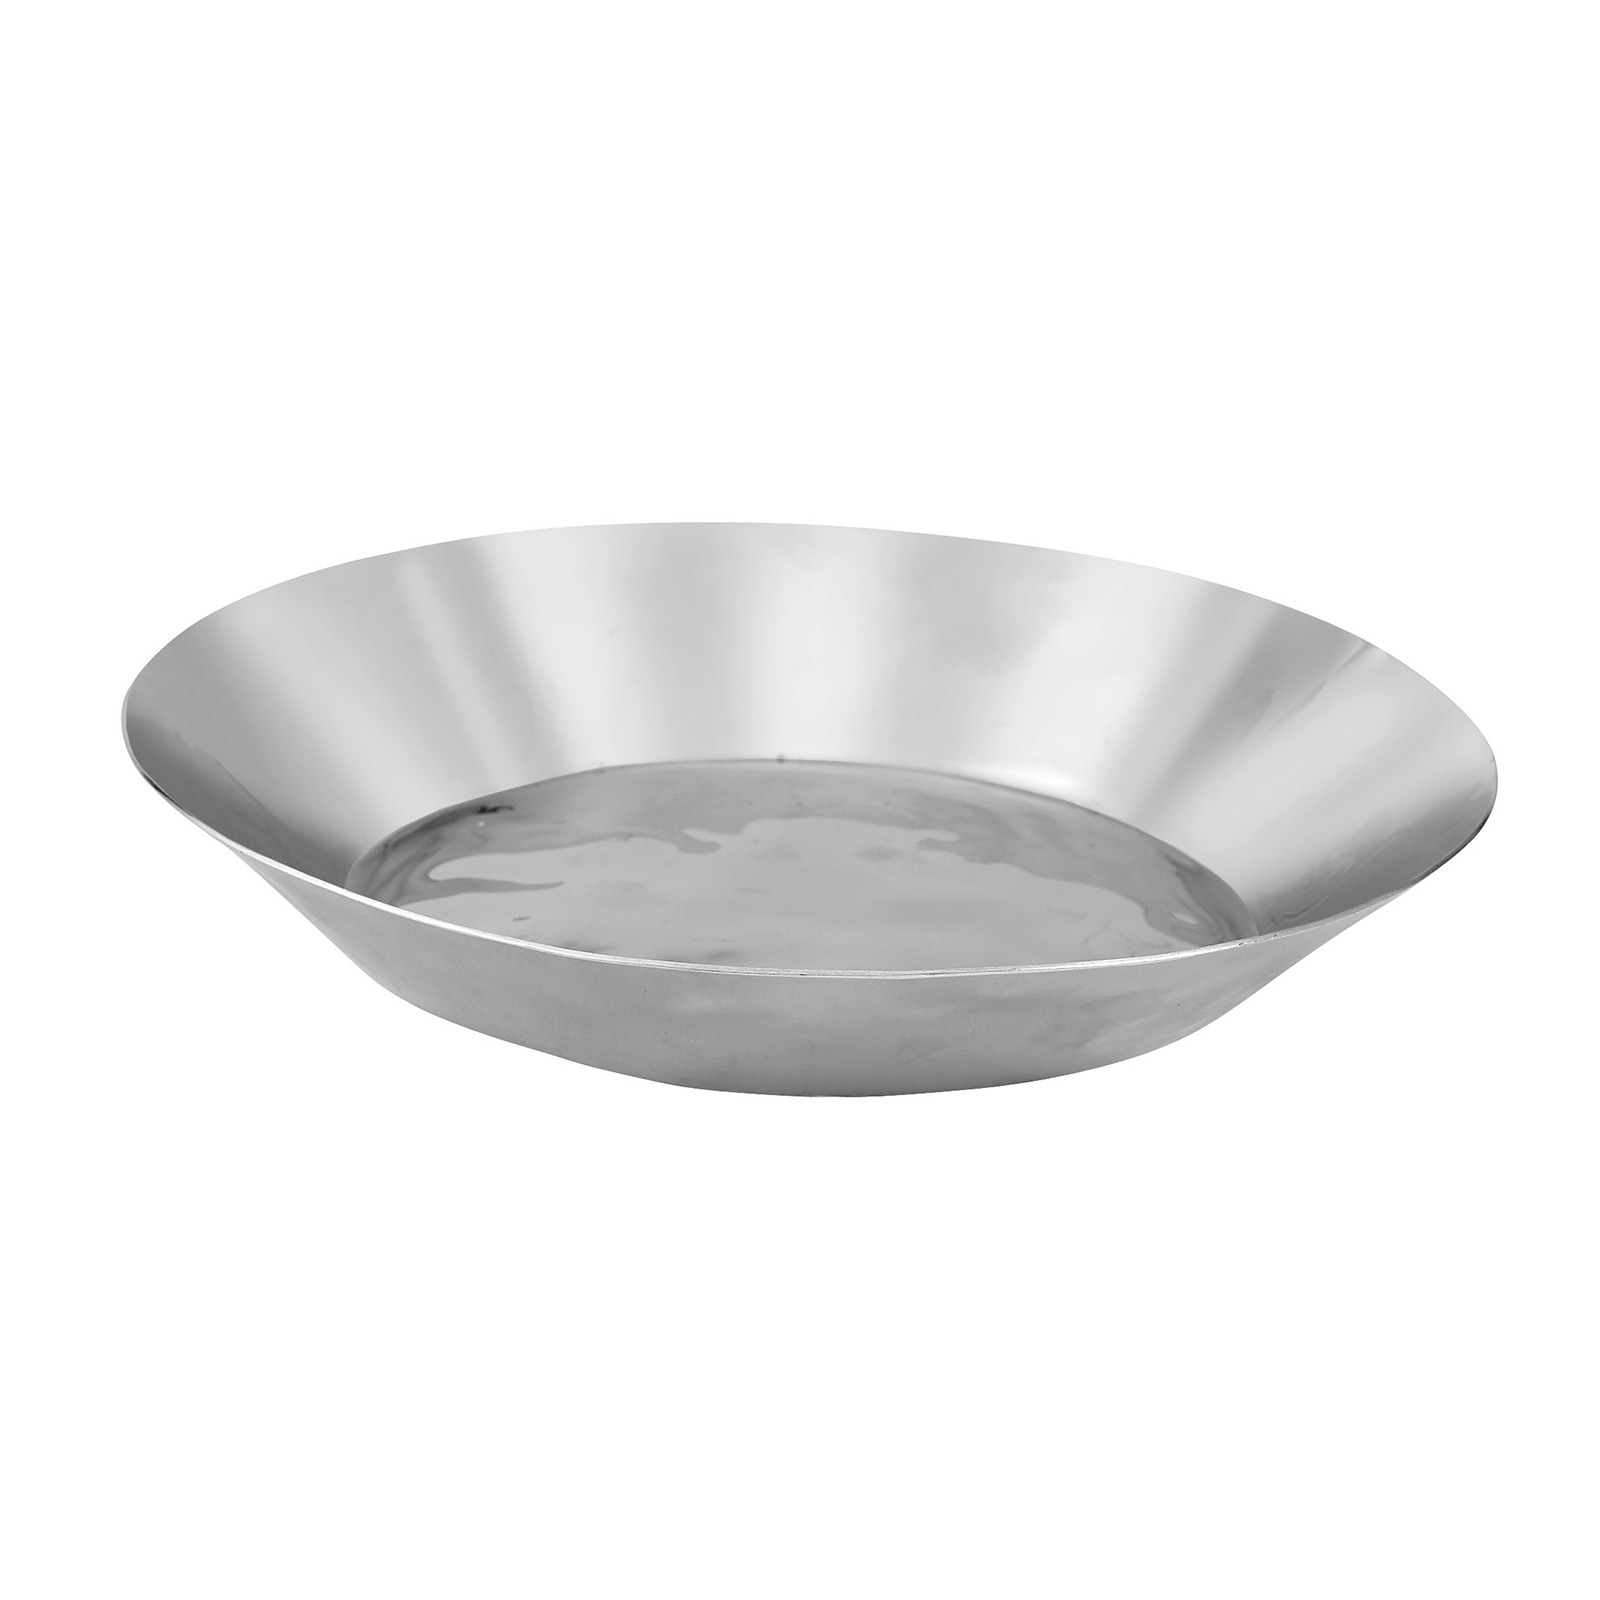 Winco HPR-10 display tray, market / bakery